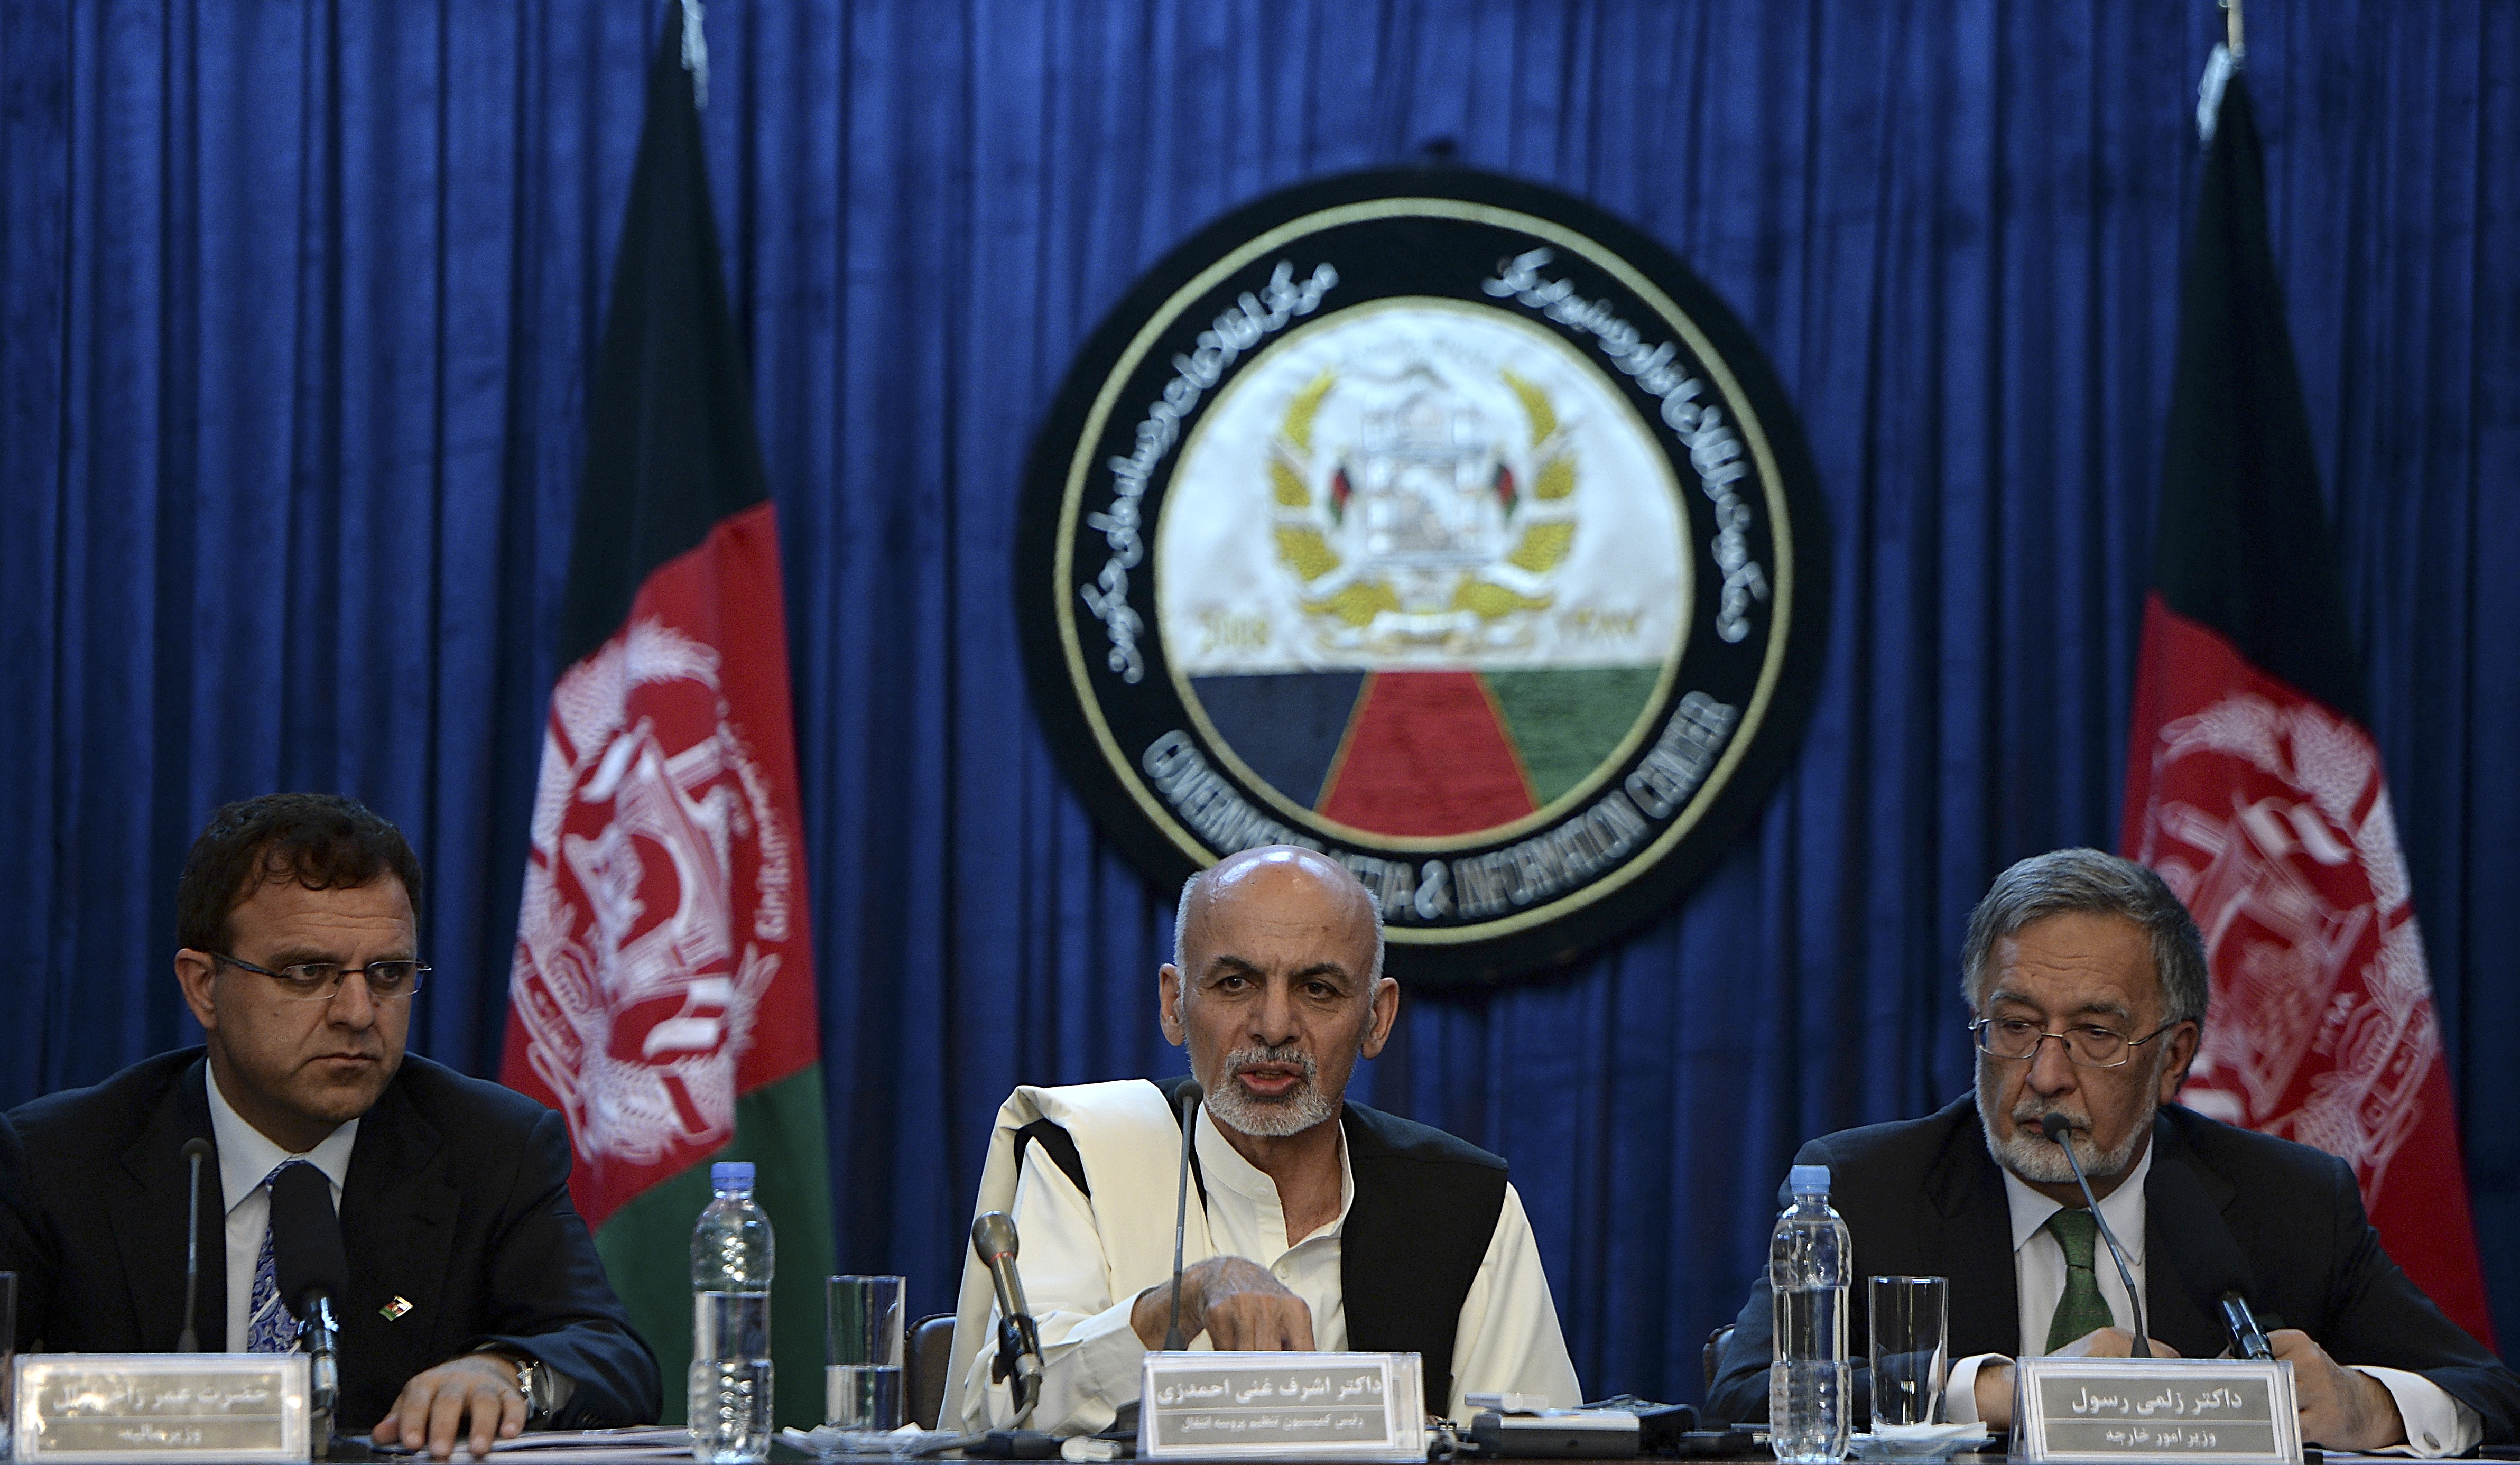 Former President Ashraf Ghani (center) speaks during a joint press conference while former Afghan Foreign Minister Zalmay Rassol (right) and former Afghan Finance Minister Omar Zakhilwal (left) look on in Kabul. (Photo by SHAH MARAI/AFP via Getty Images)